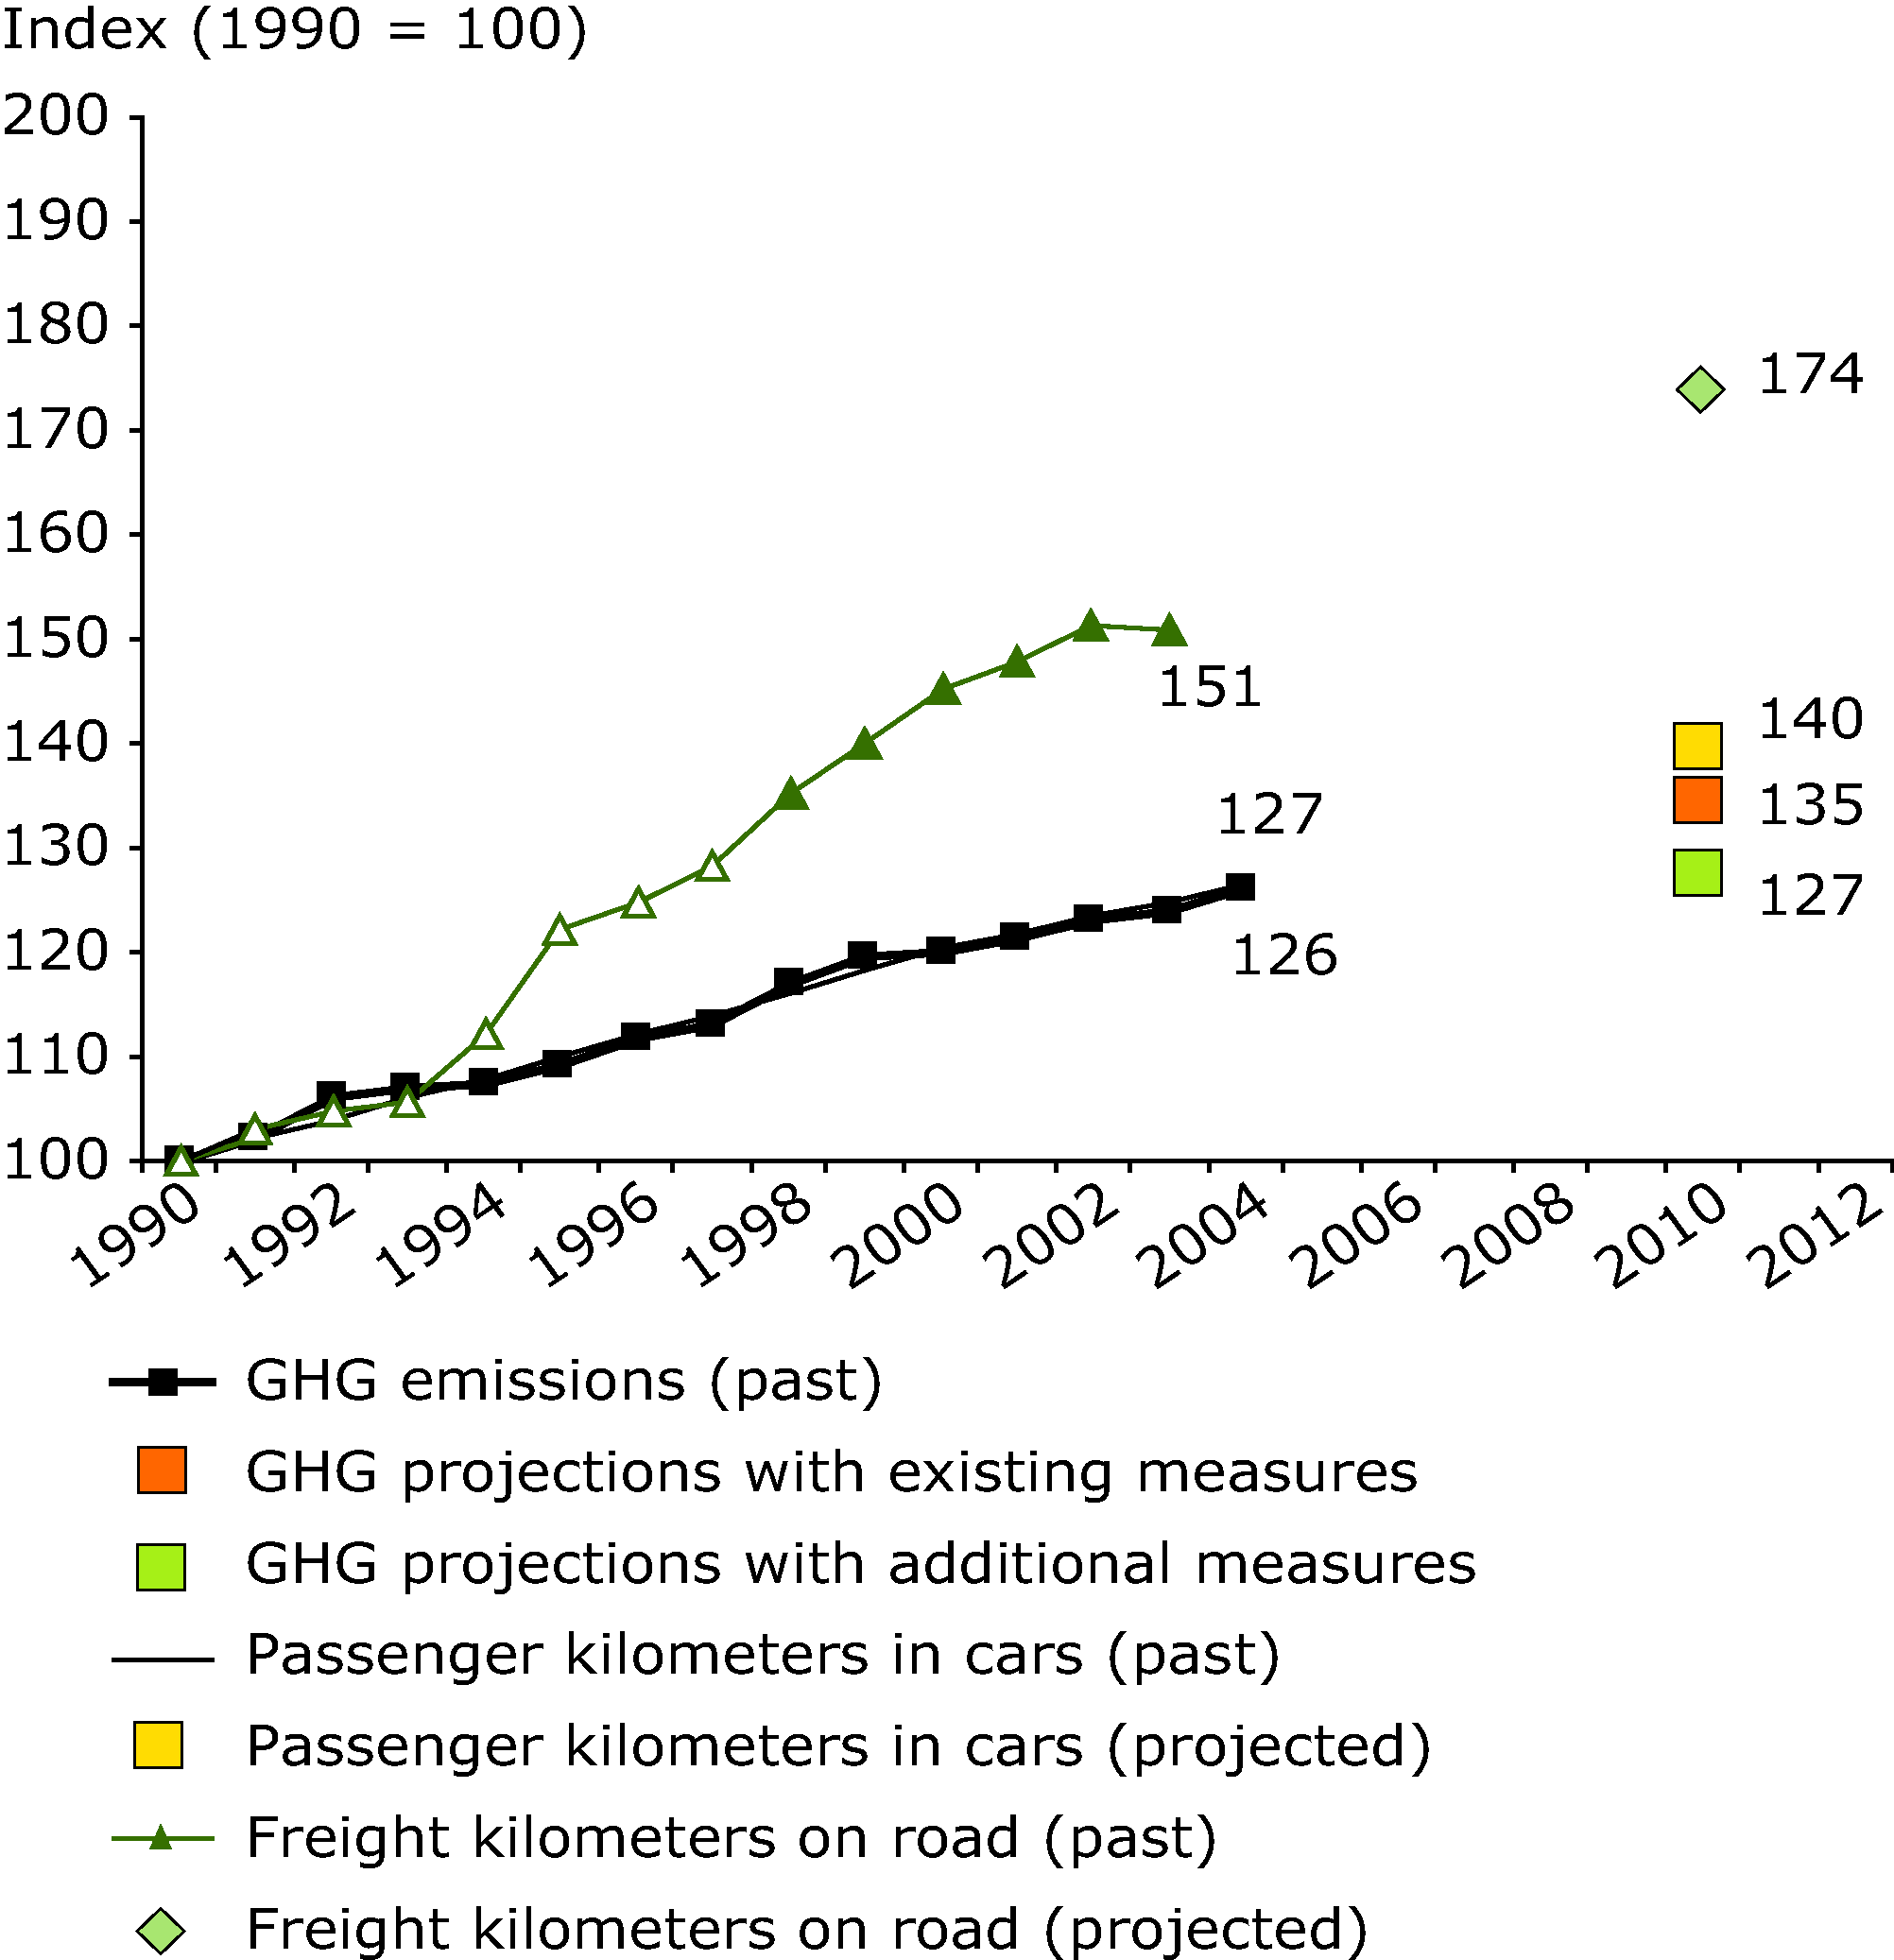 EU-15 greenhouse gas emissions from transport compared with transport volumes (passenger transport by car and freight transport by road)